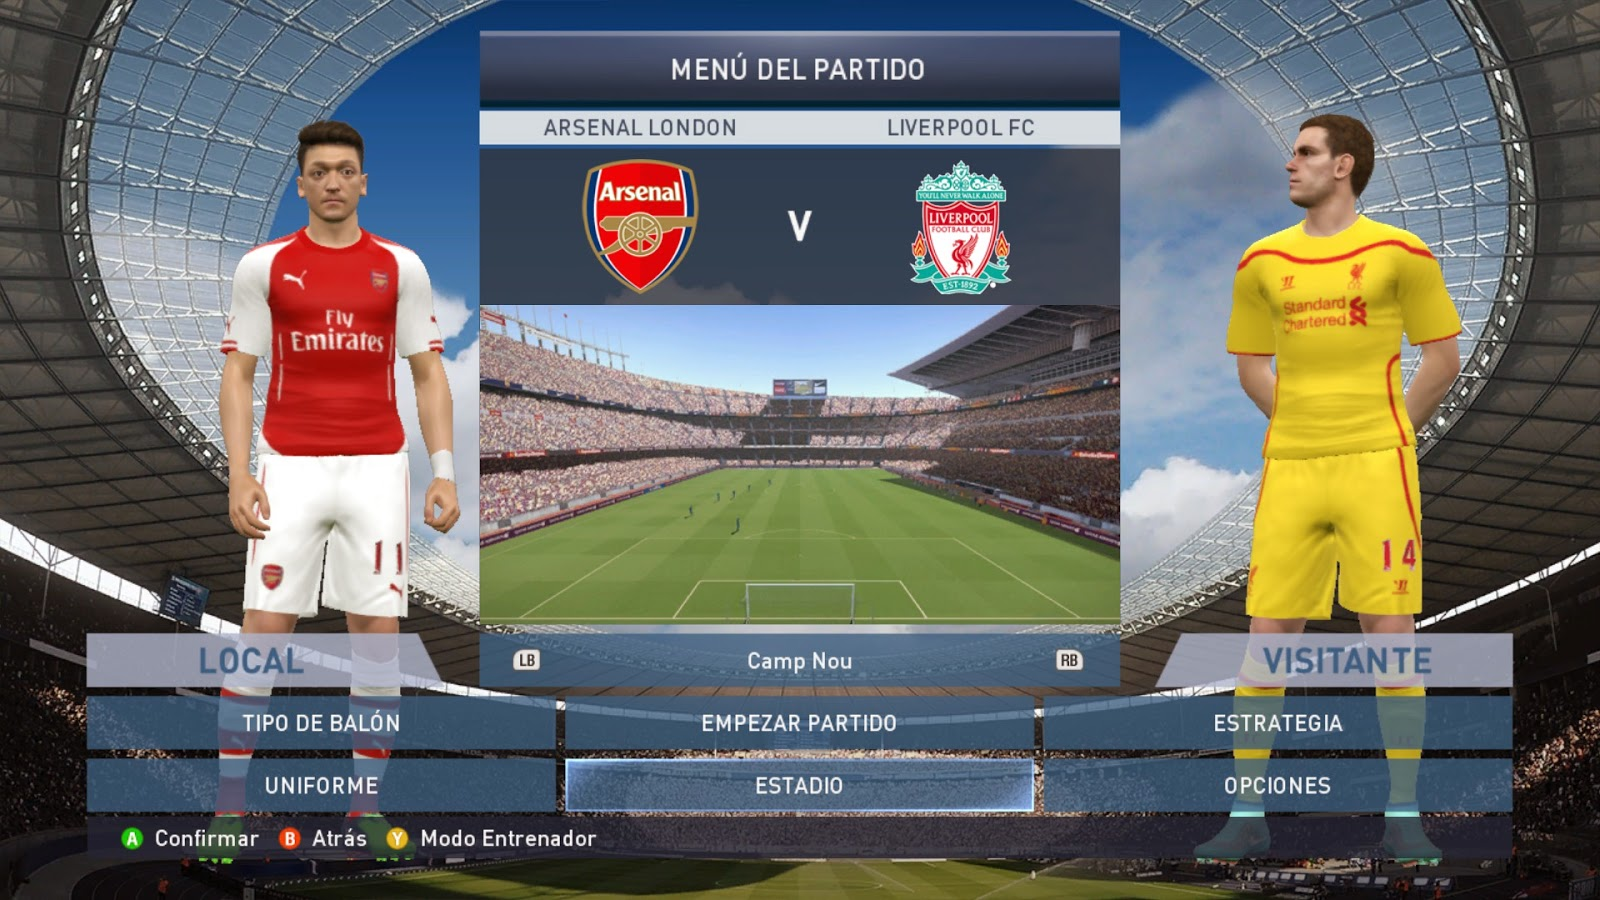 PESGalaxycom 2015 450 Patch AIO with FIX for PES 2015